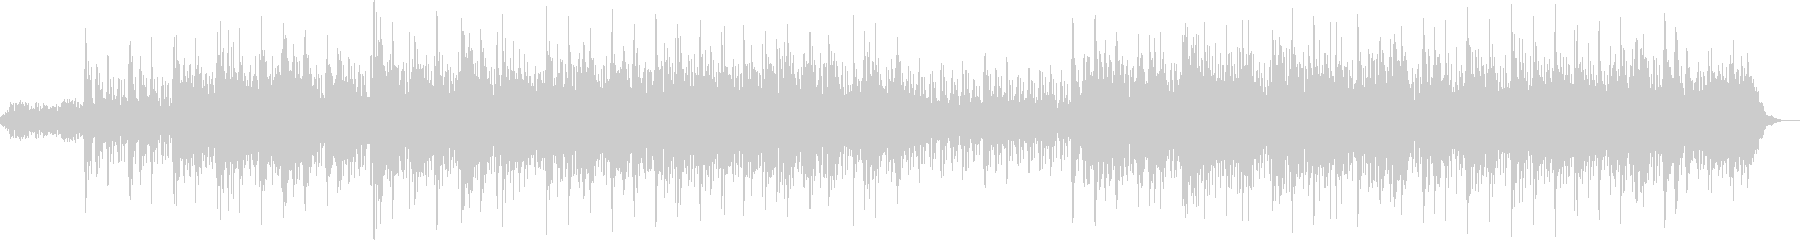 Refreshing and gentle healing BGM's unreproduced waveform